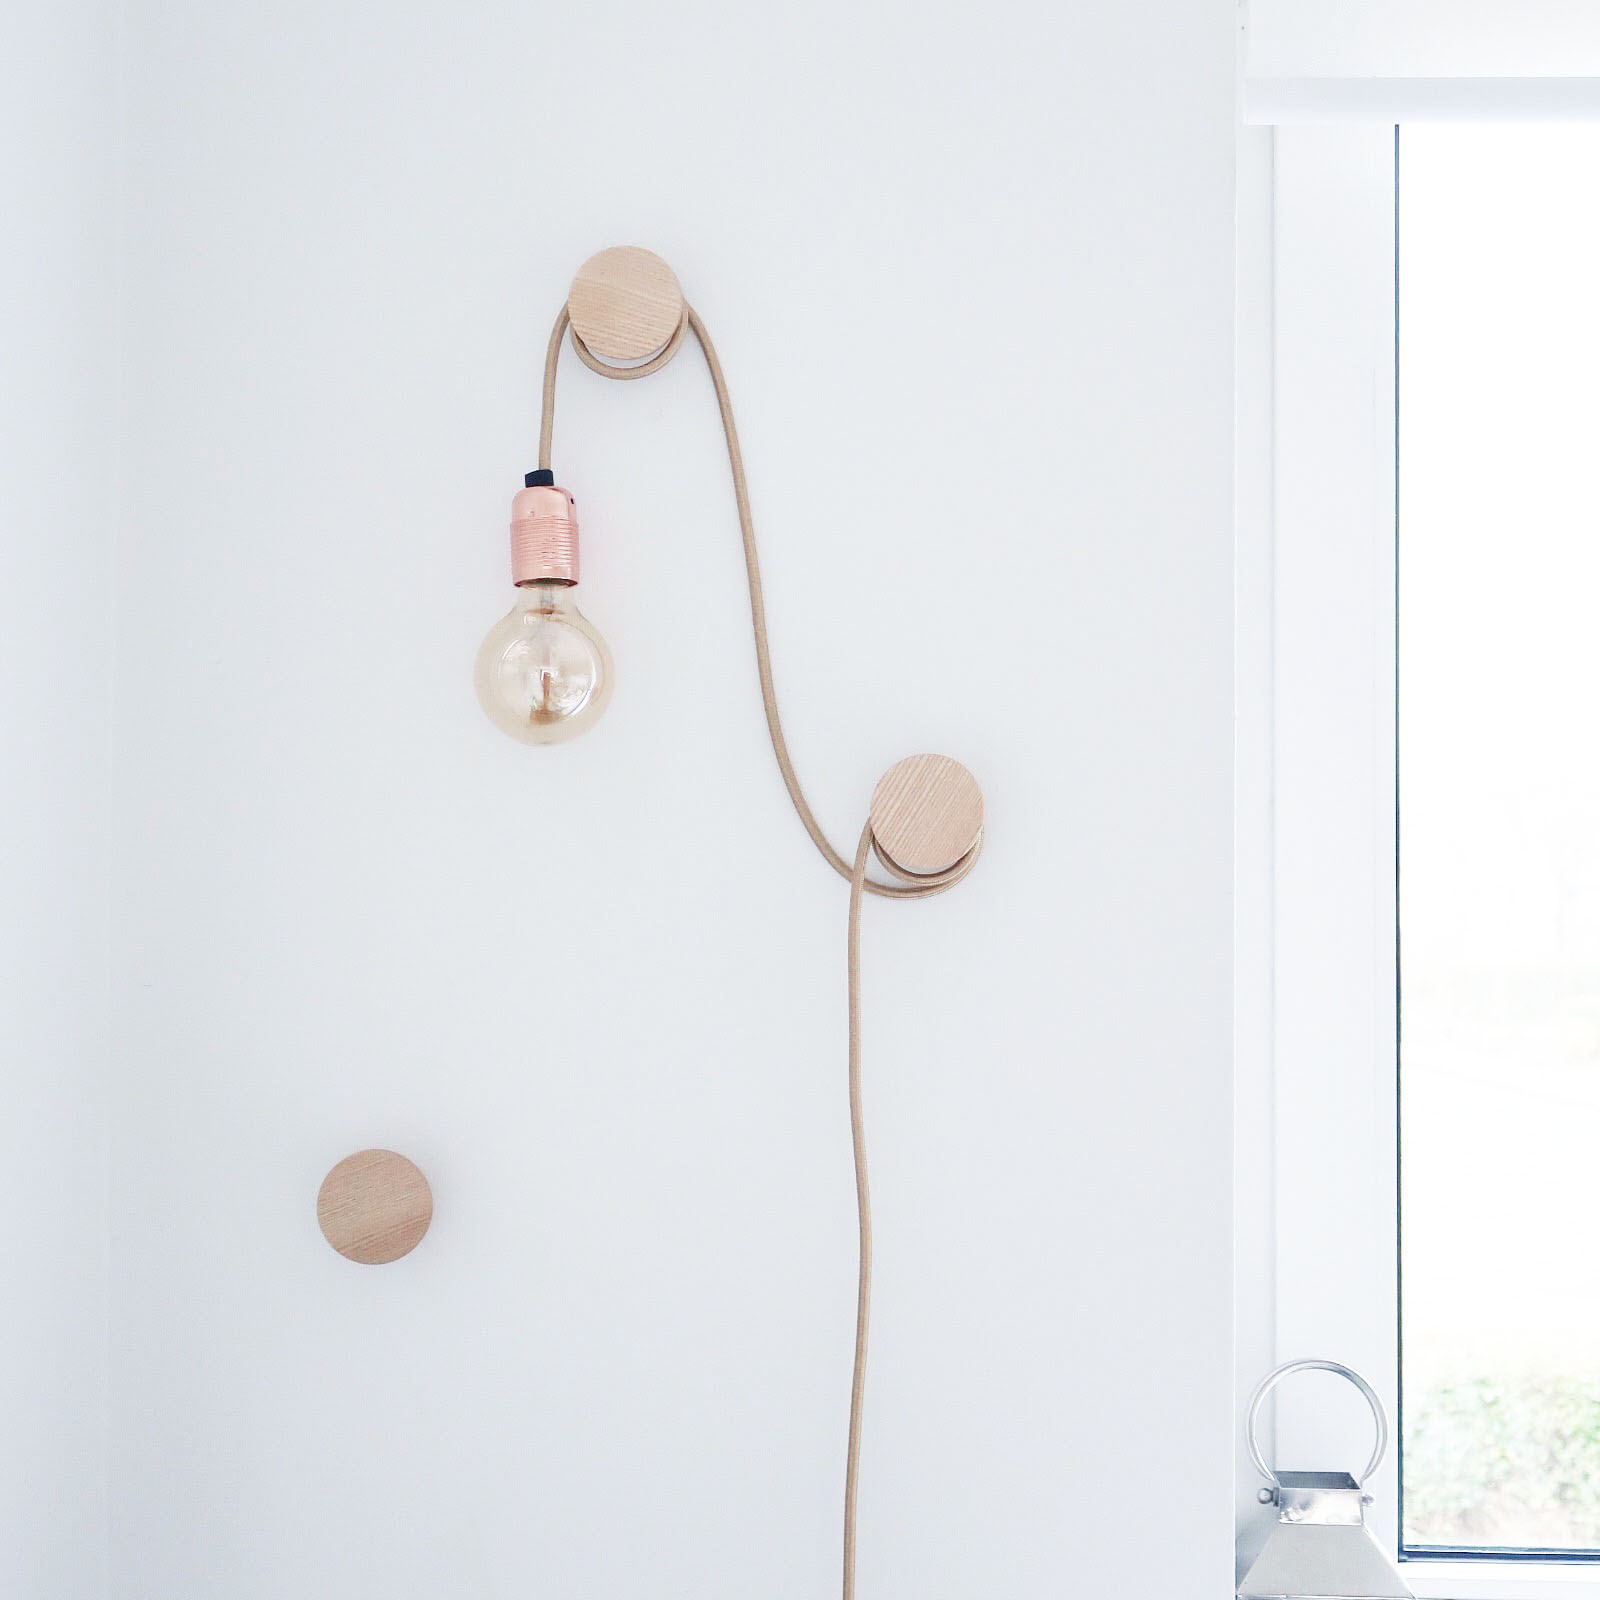 Maisy Meow Interiors Hanging Bare Bulb Feature Light over Wall Hooks DIY